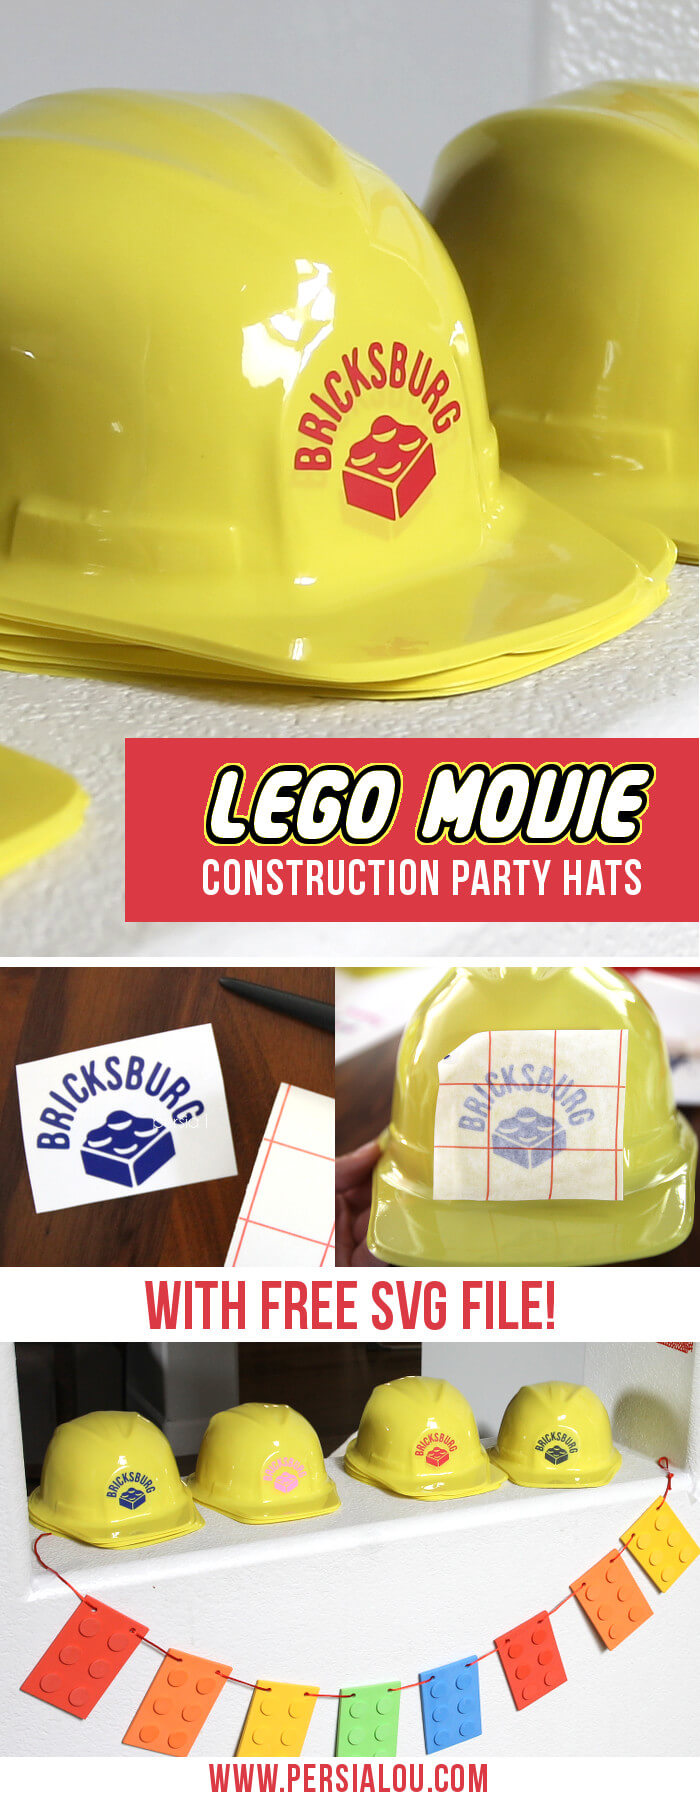 """How cute! Love these """"Bricksburg"""" Lego Movie constructions hats! Perfect for a Lego party - there's a free svg cut file for the Silhouette"""